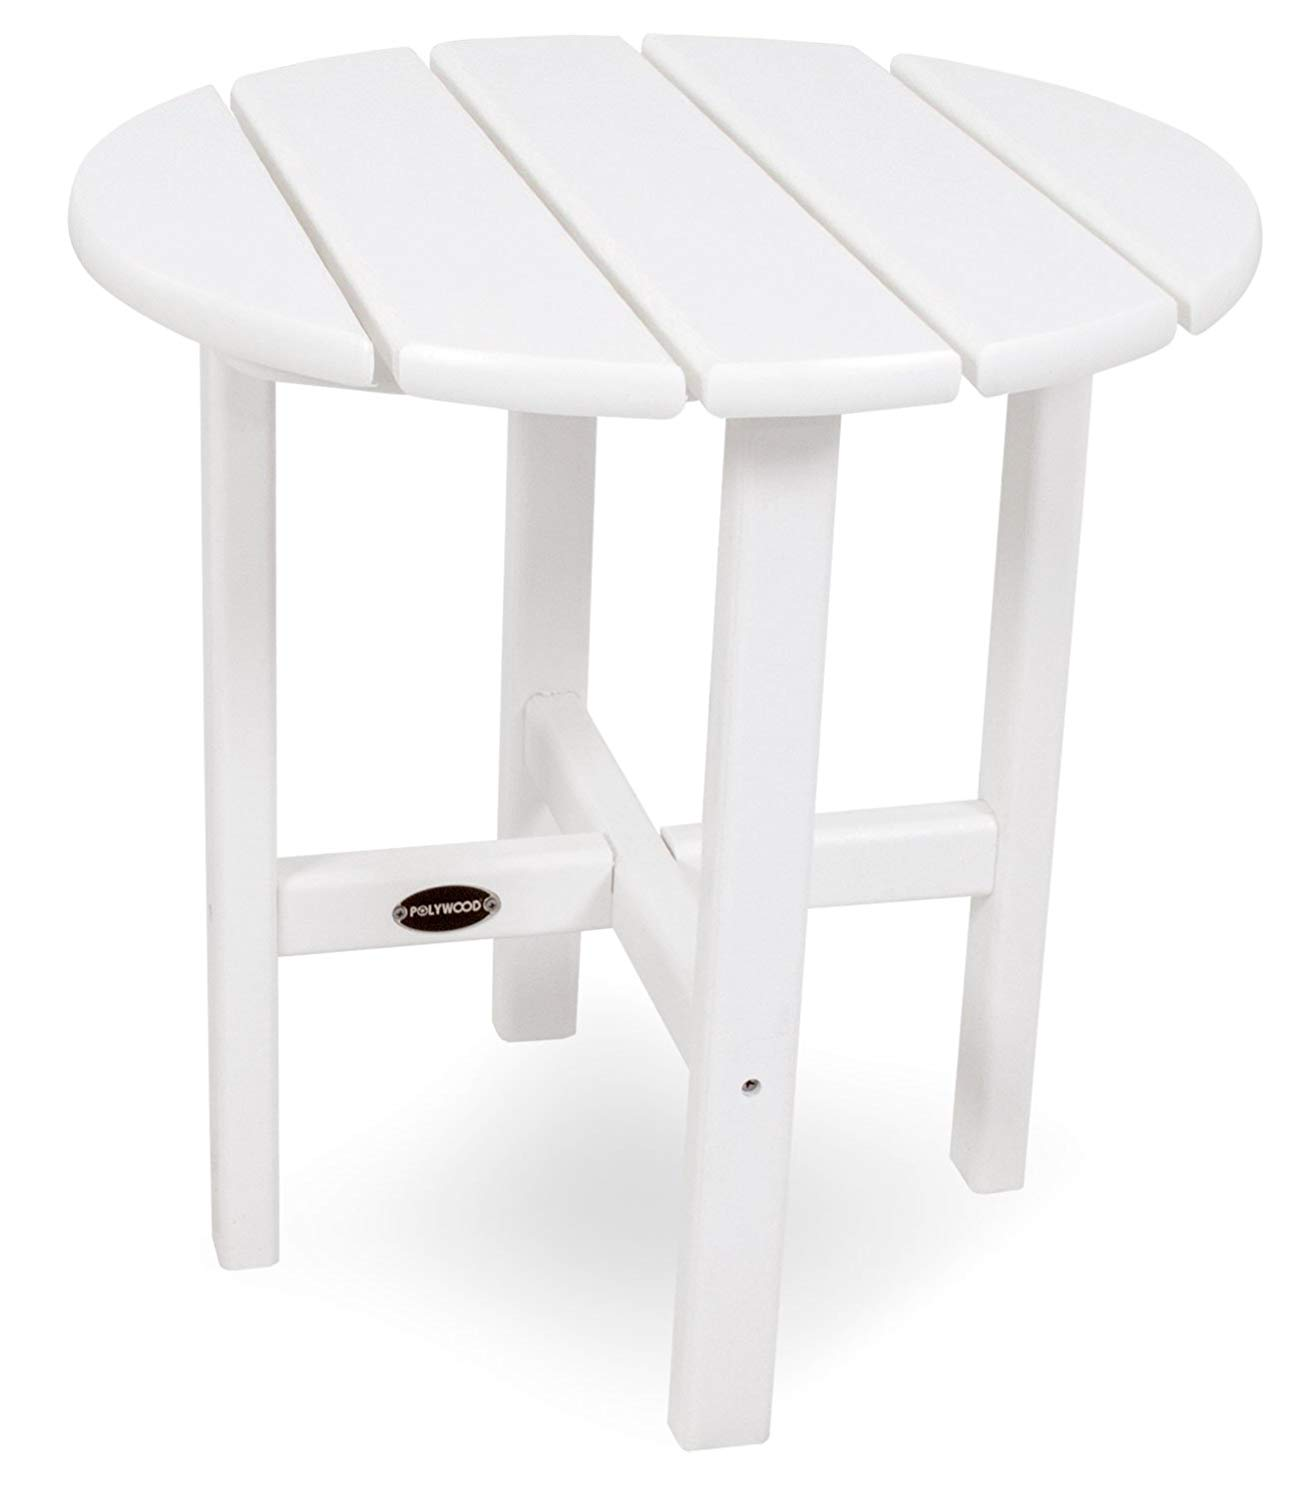 polywood round side table white patio accent tables garden outdoor funky lamps bathroom wall clock corner for bedroom dining room runners black and cherry end target lamp wicker